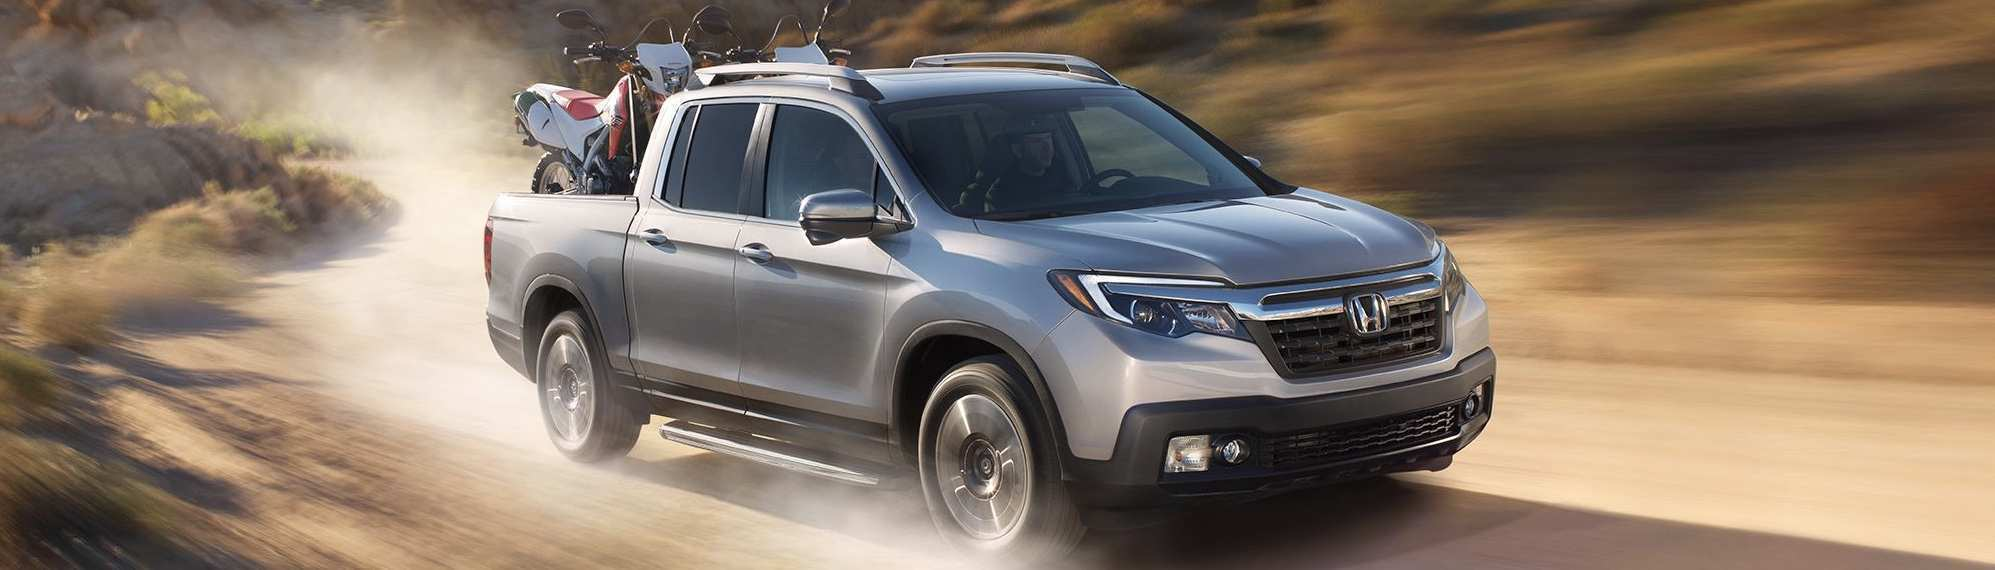 33 Best Review 2019 Honda Ridgeline Incentives Review by 2019 Honda Ridgeline Incentives